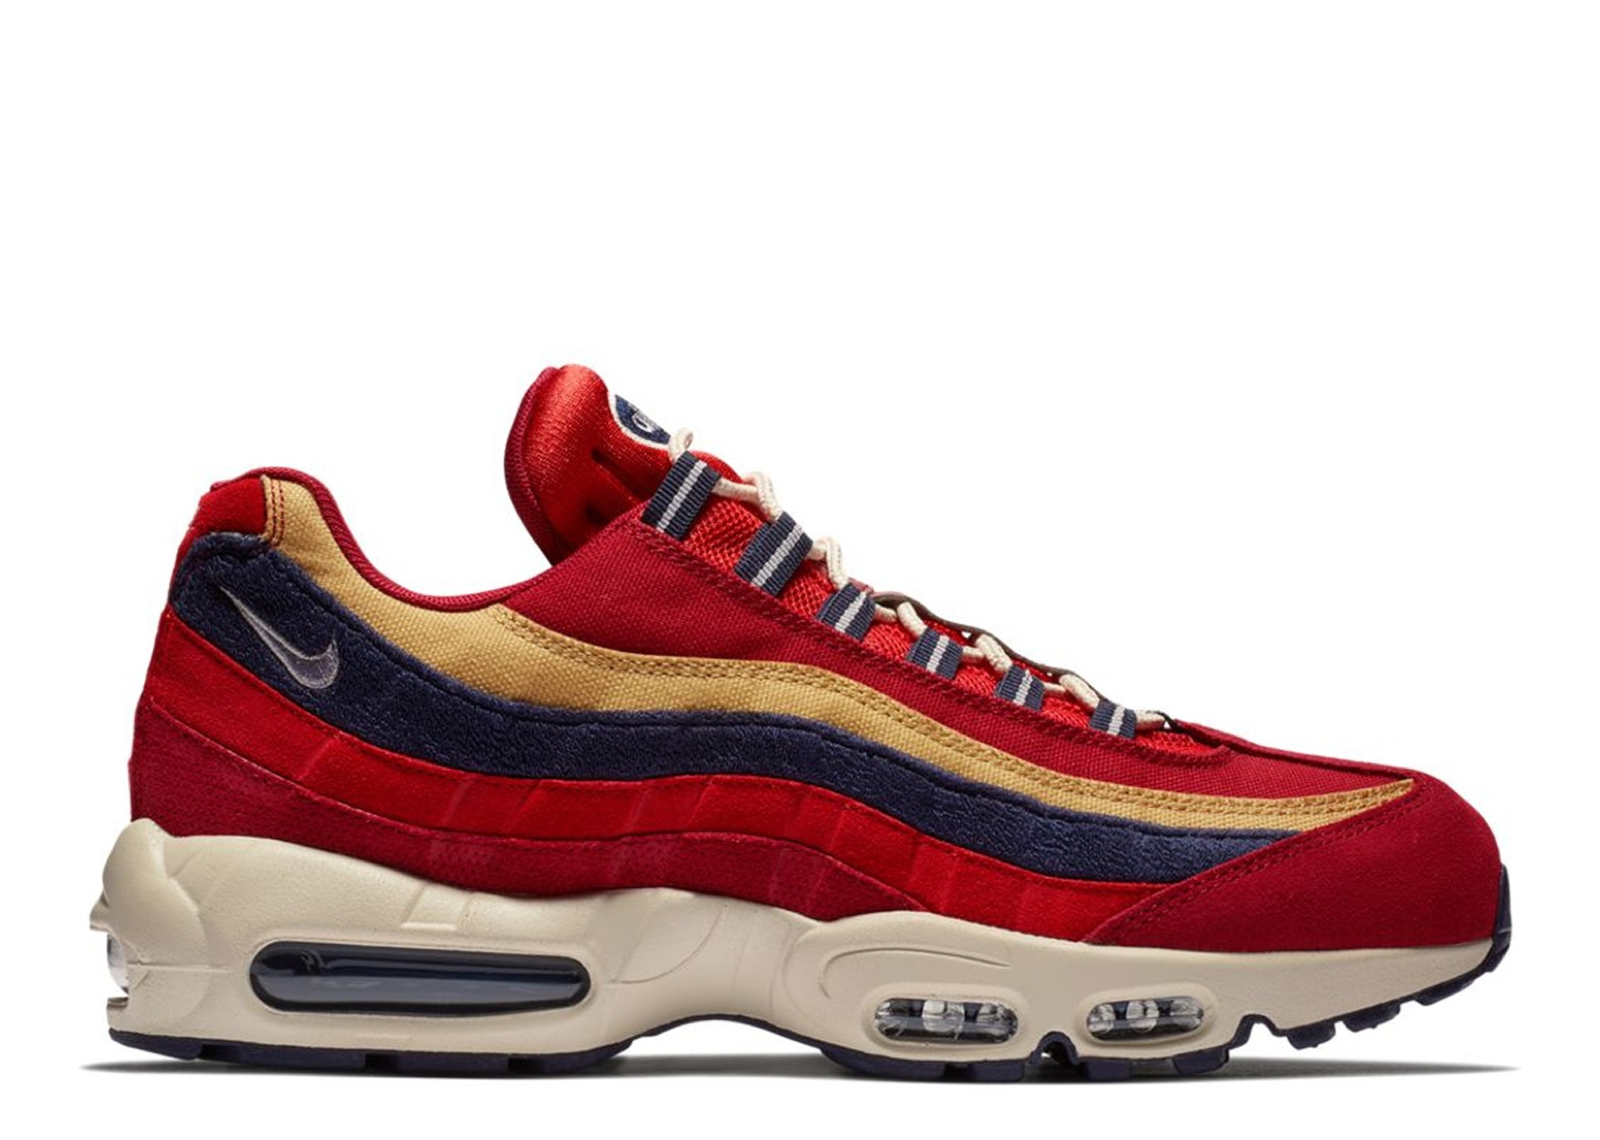 new product 14dd0 6d4a0 Nike Air Max 95 Red Crush Wheat Gold - 0